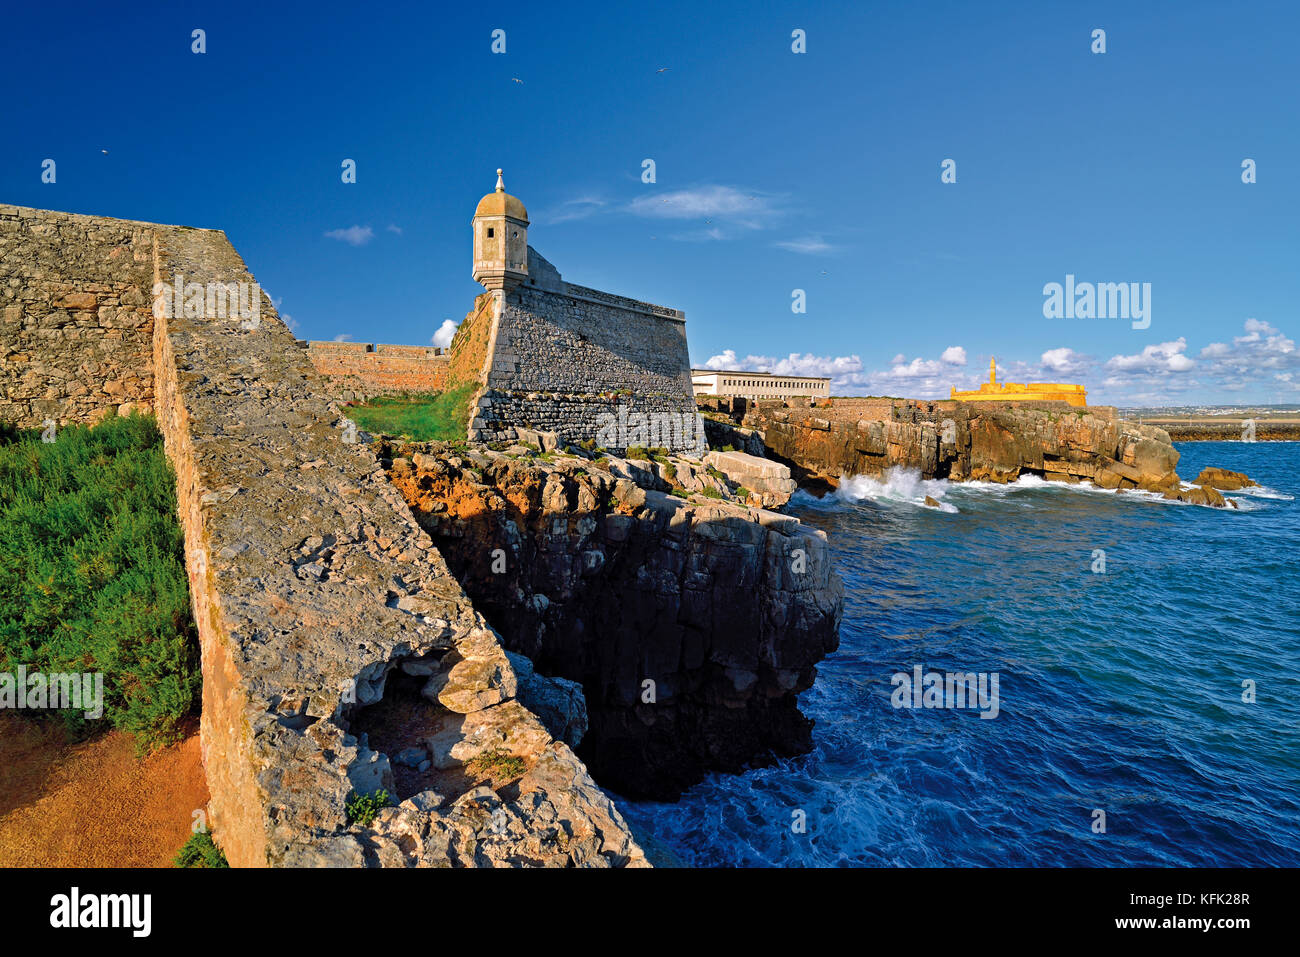 Coastline with medieval fortress and rocky coast in Peniche - Stock Image